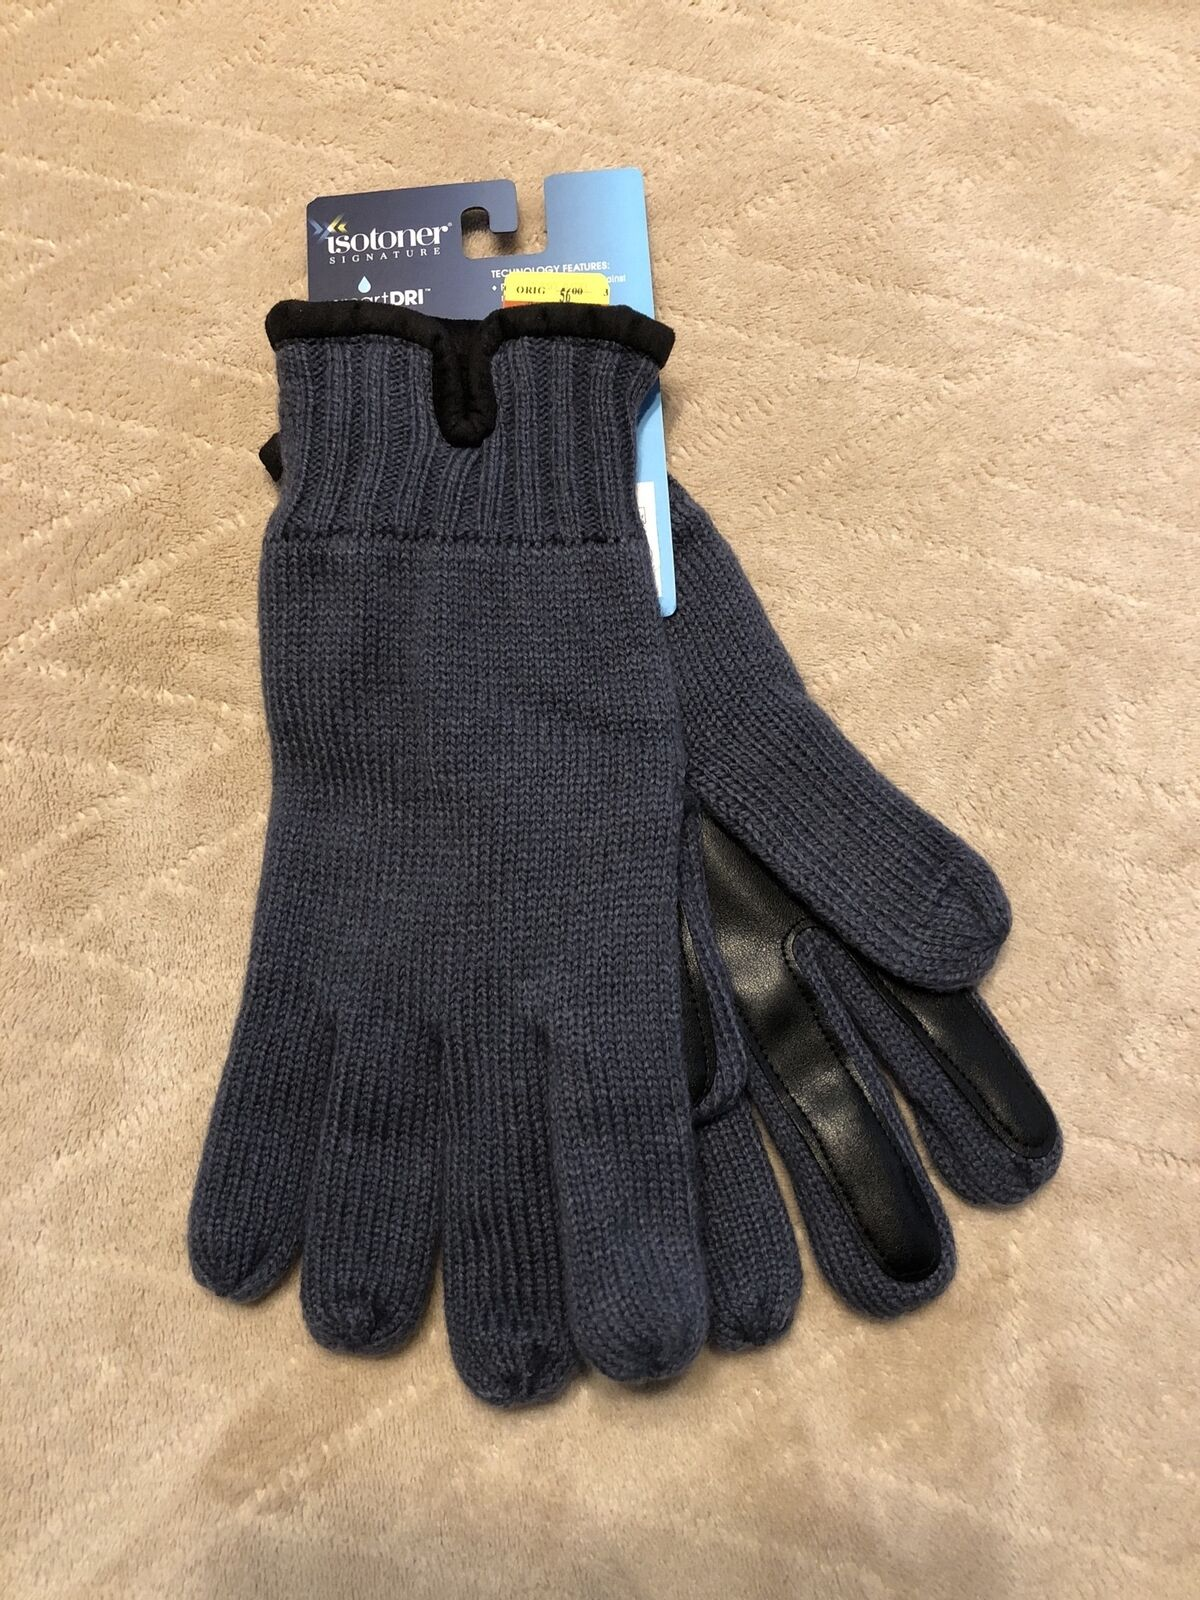 Isotoner SmartDRI SmarTouch Knit Gloves Charcoal Mens One Size New